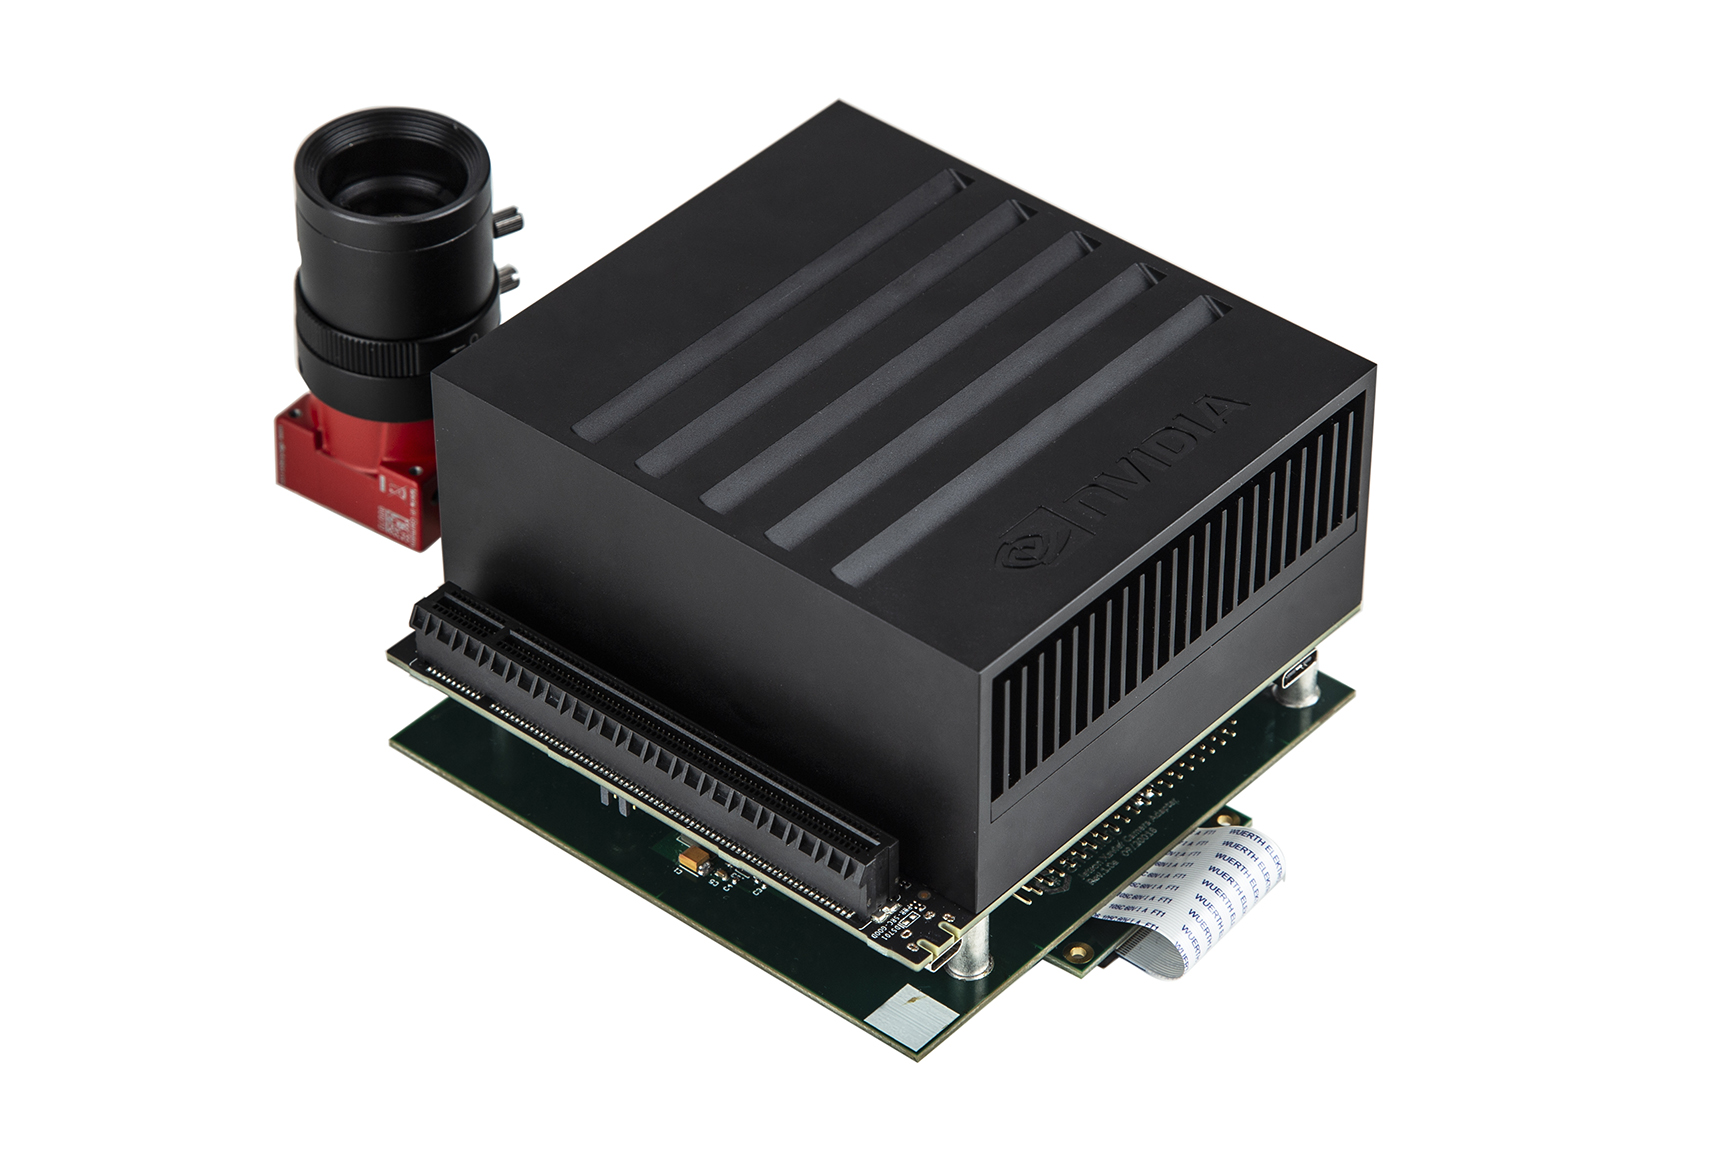 Nvidia Jetson Xavier on Antmicro's baseboard with Allied Vision's Alvium camera